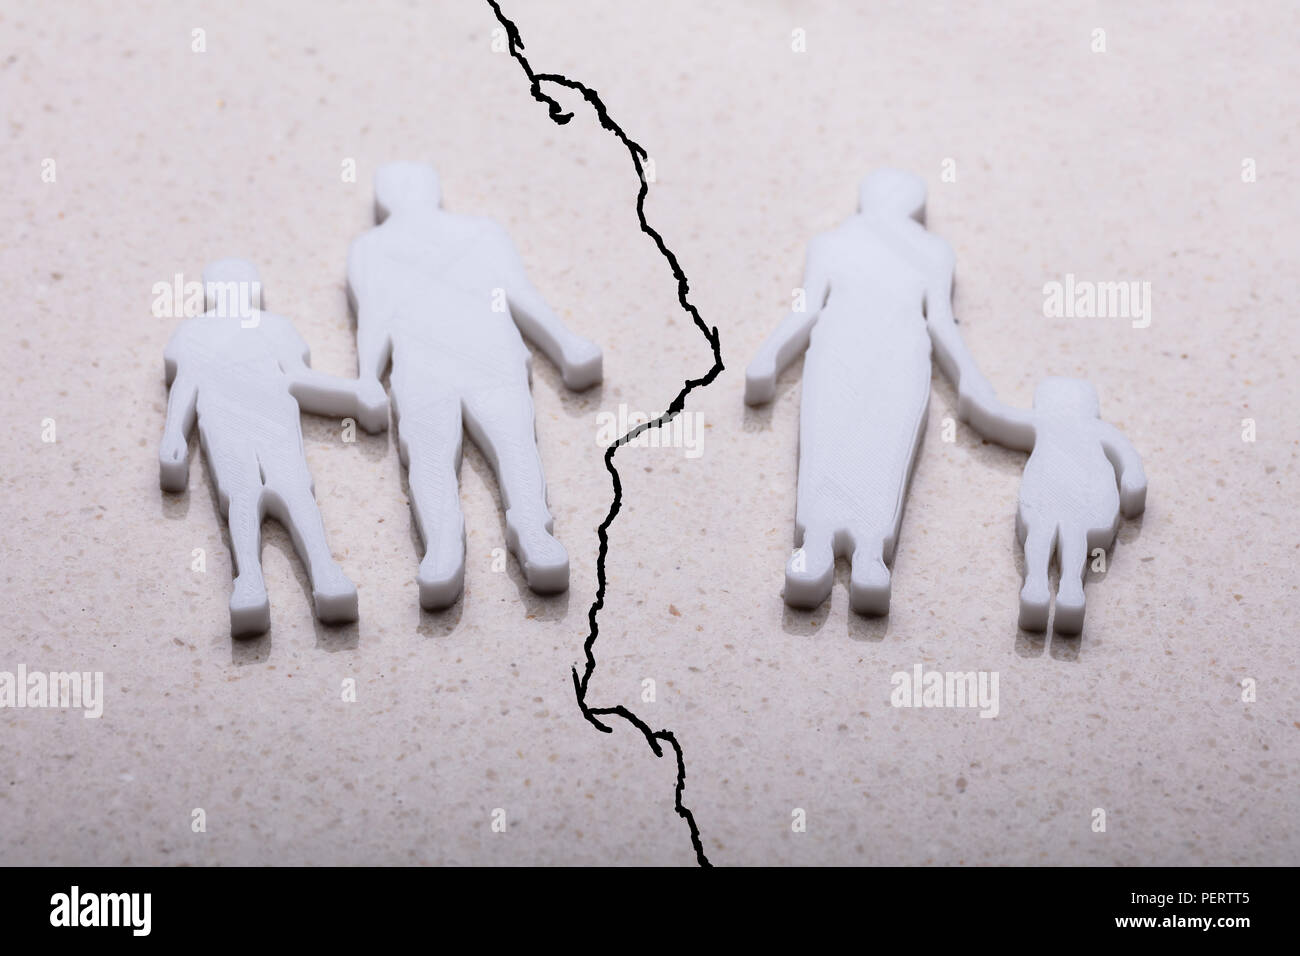 Separation Of Family Figures On Marble Background - Stock Image